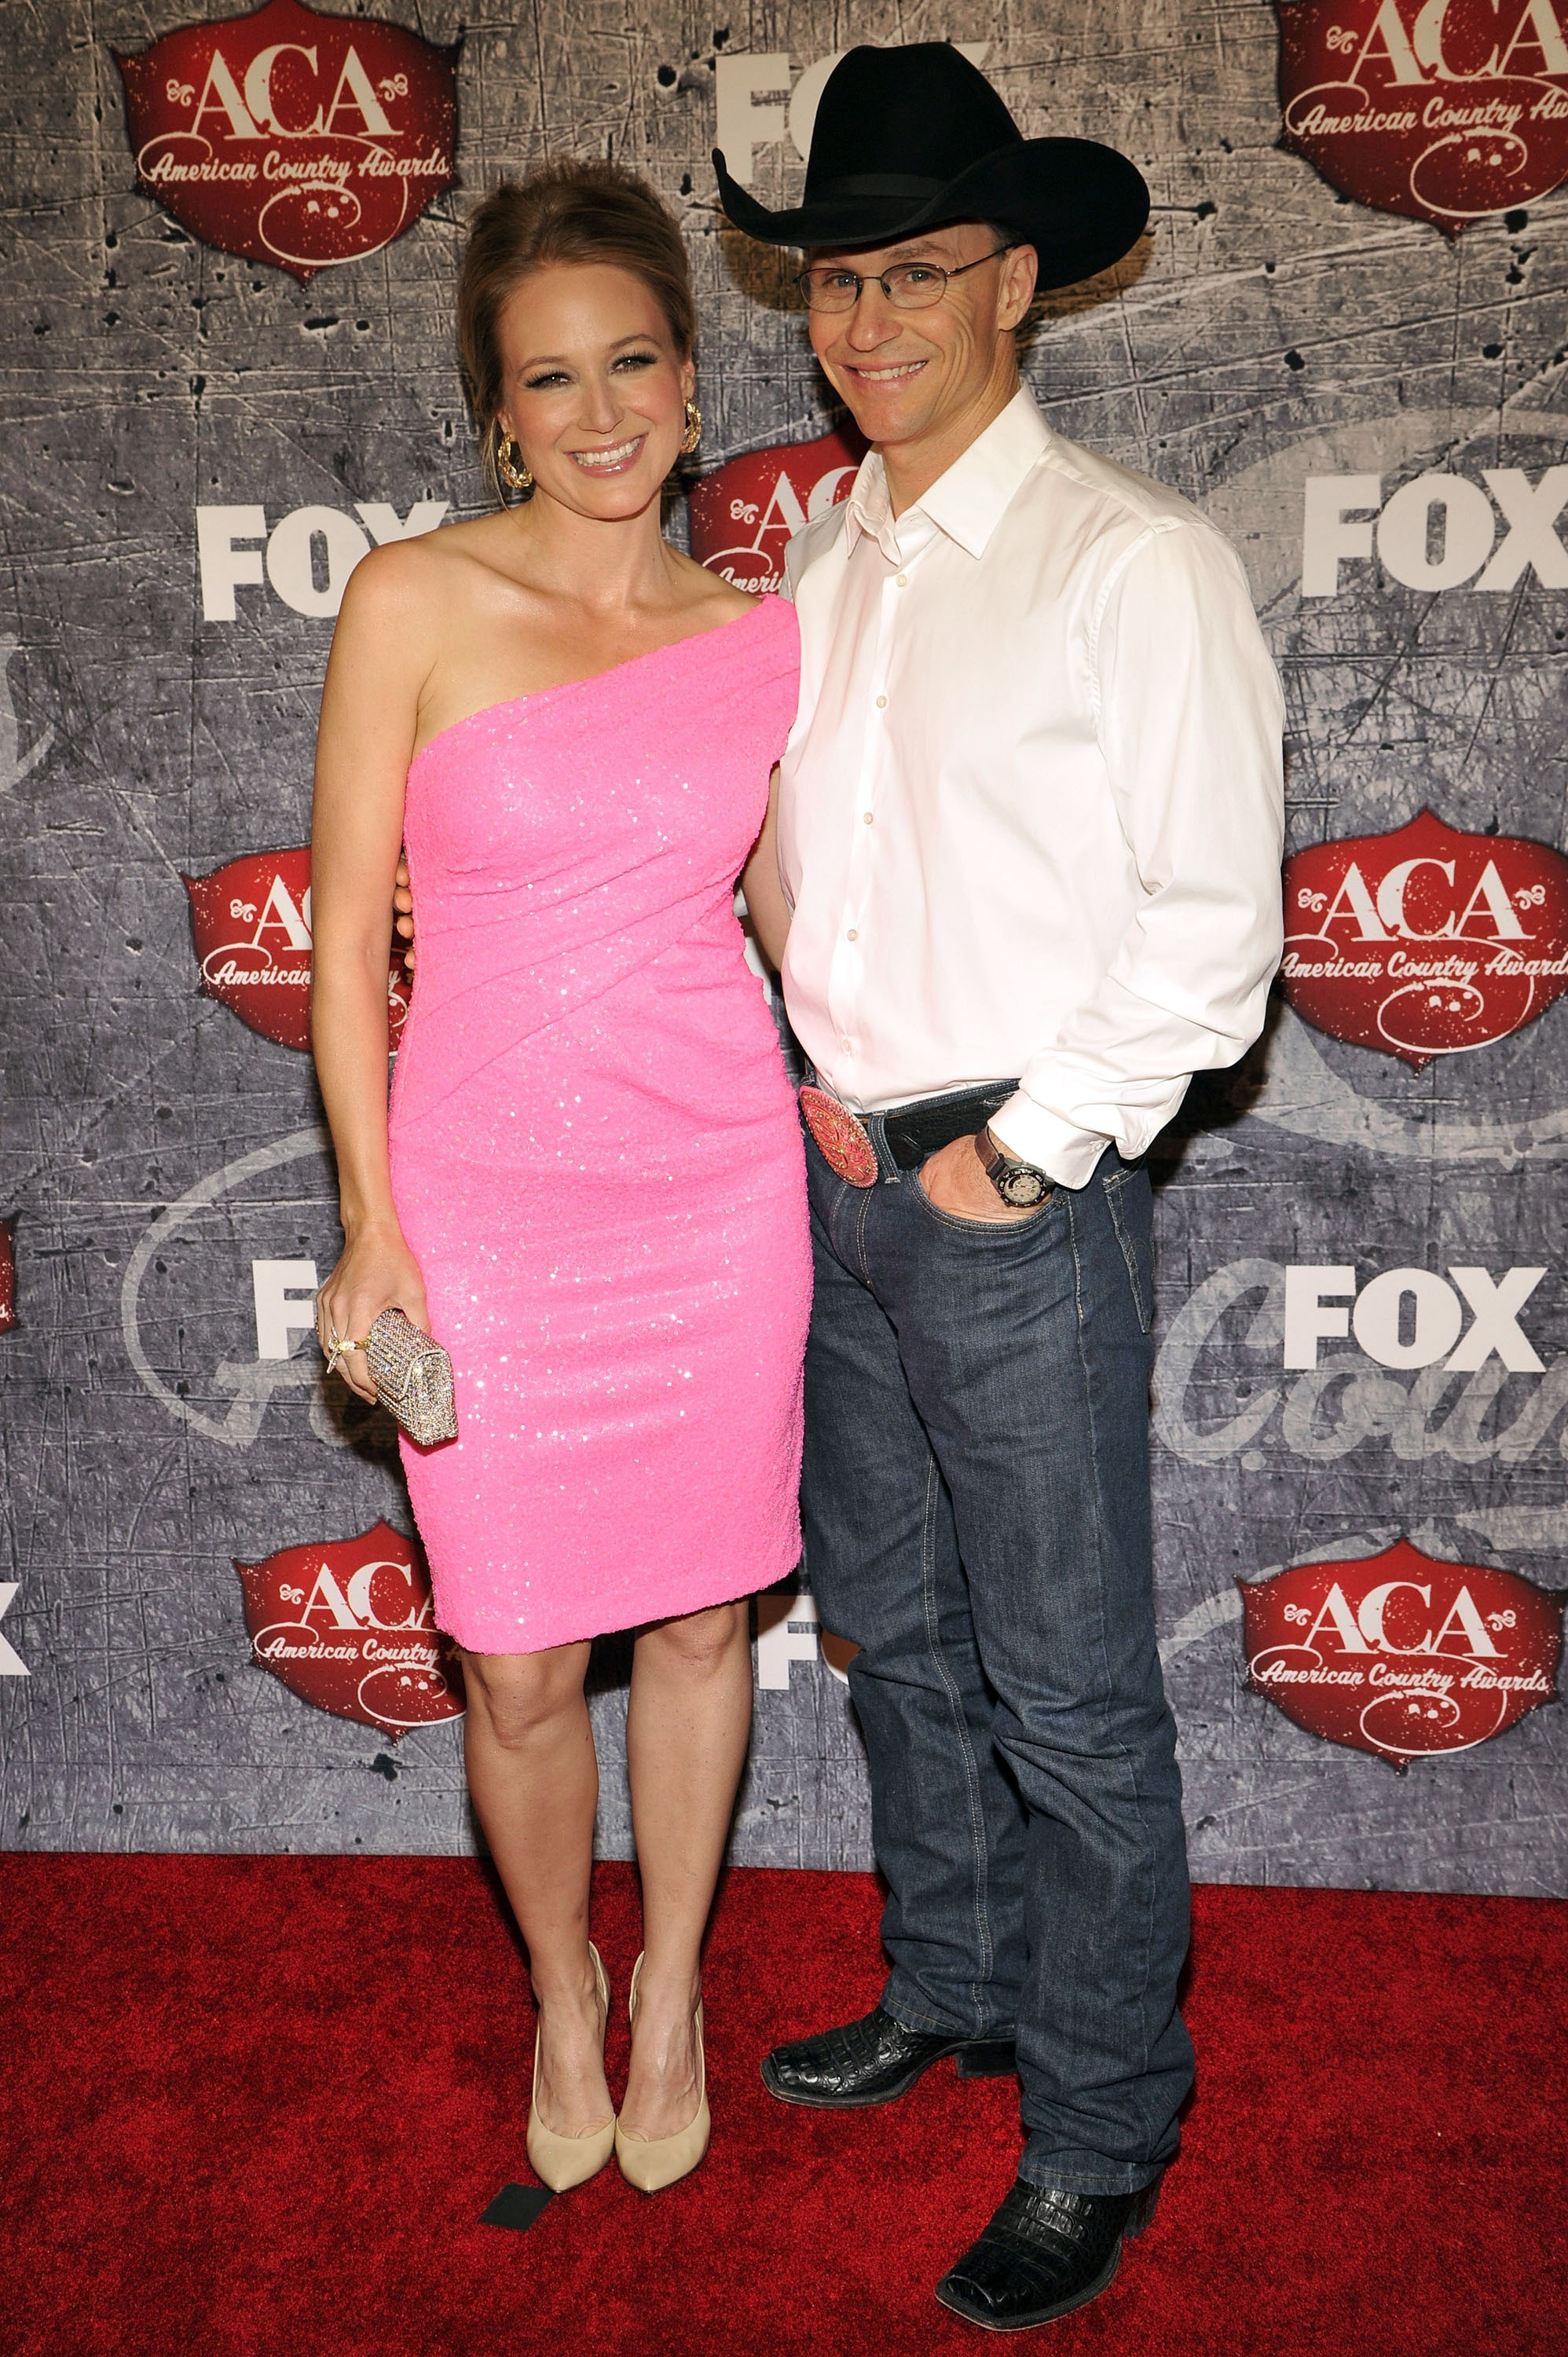 Singer Jewel is divorcing husband Ty Murray after a 16-year relationship. They have a son named Kase.